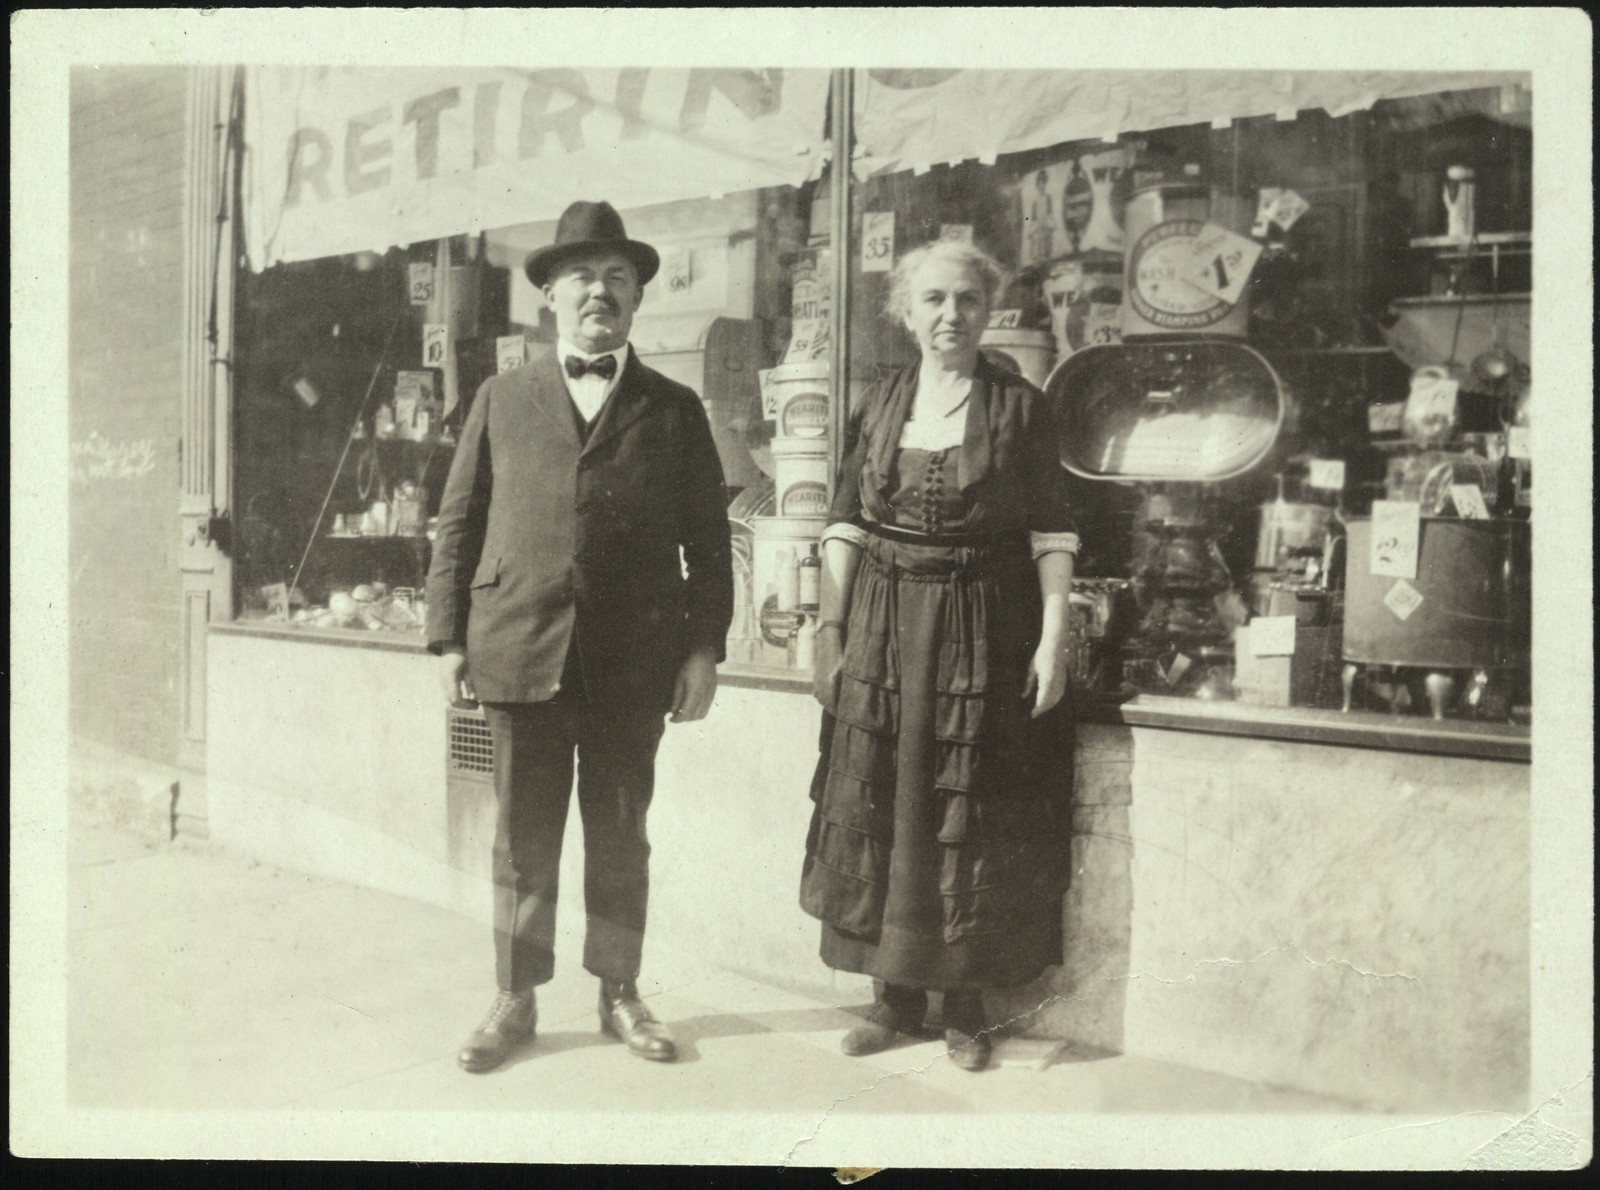 Aaron Copland's parents Harris and Sarah Copland, 1922